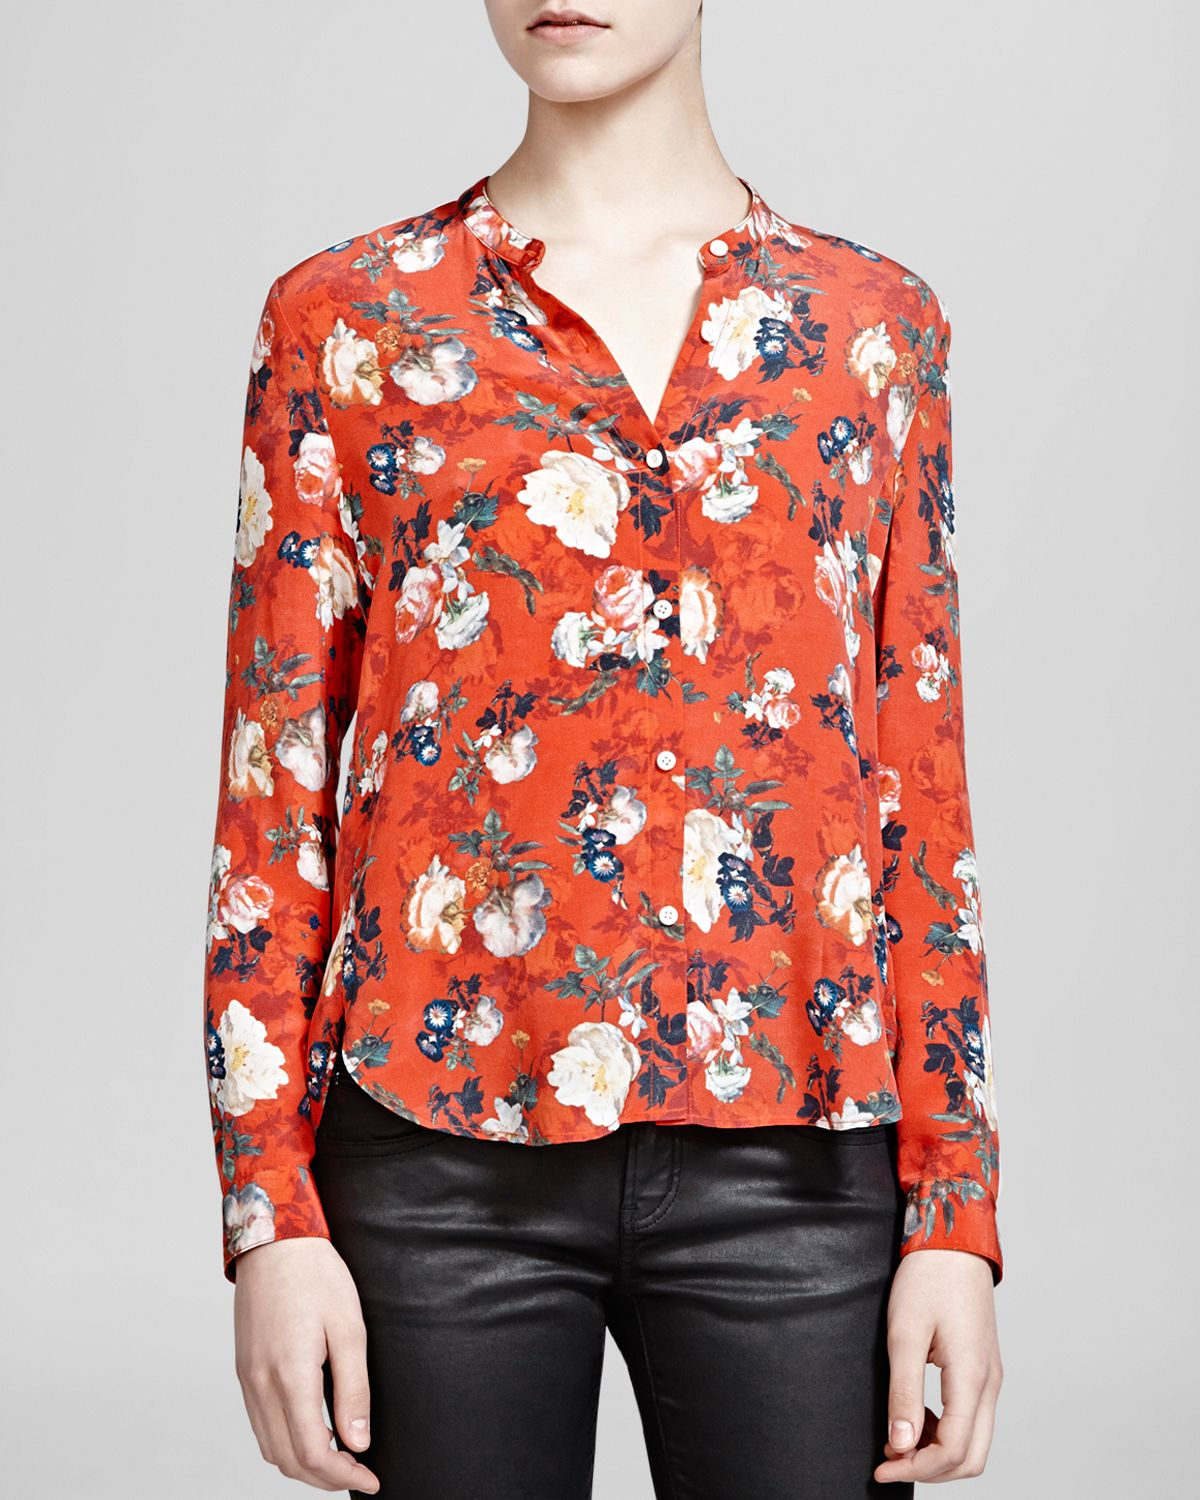 Free Shipping Purchase New For Sale The Kooples Silk Short Sleeve Top Countdown Package Cheap Online Get Authentic Sale Online Cheap Shop 6NT2Ll13